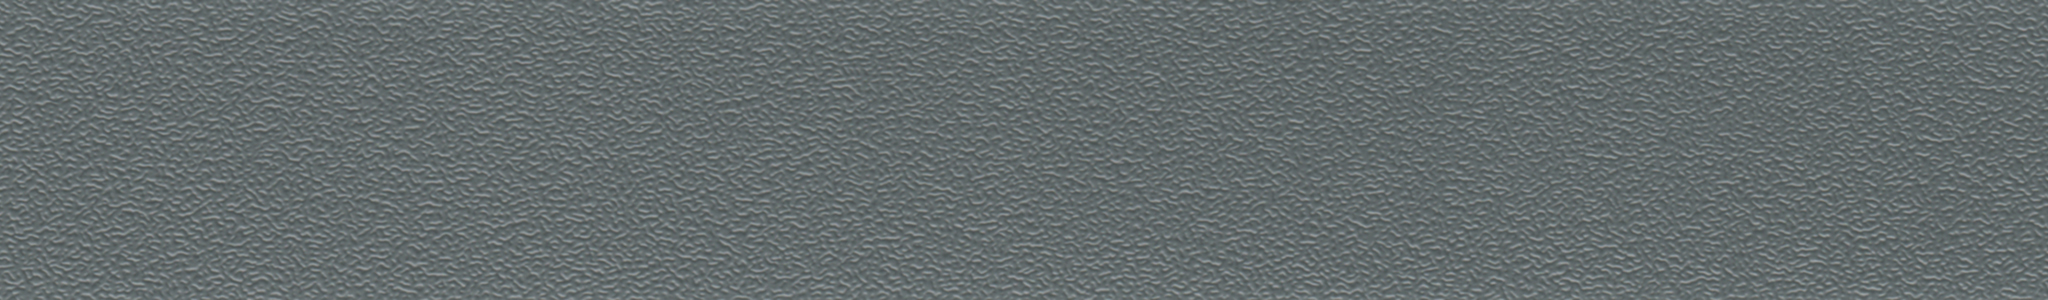 HU 17164 ABS Edge Anthracite Pearl 101